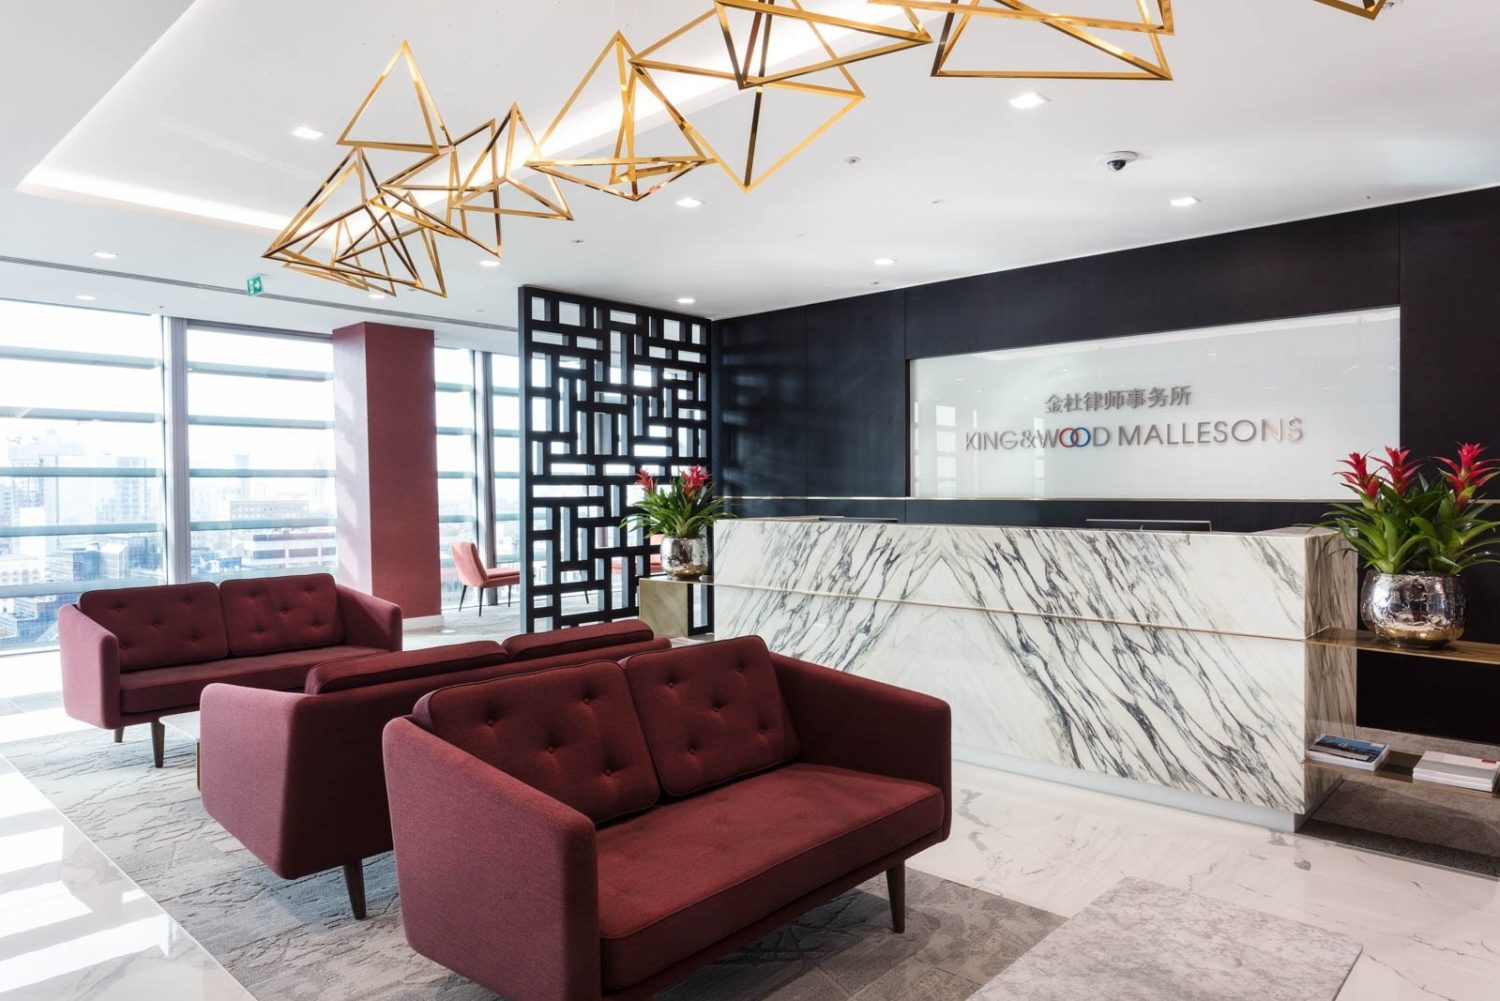 King & Wood Mallesons reception area fit out